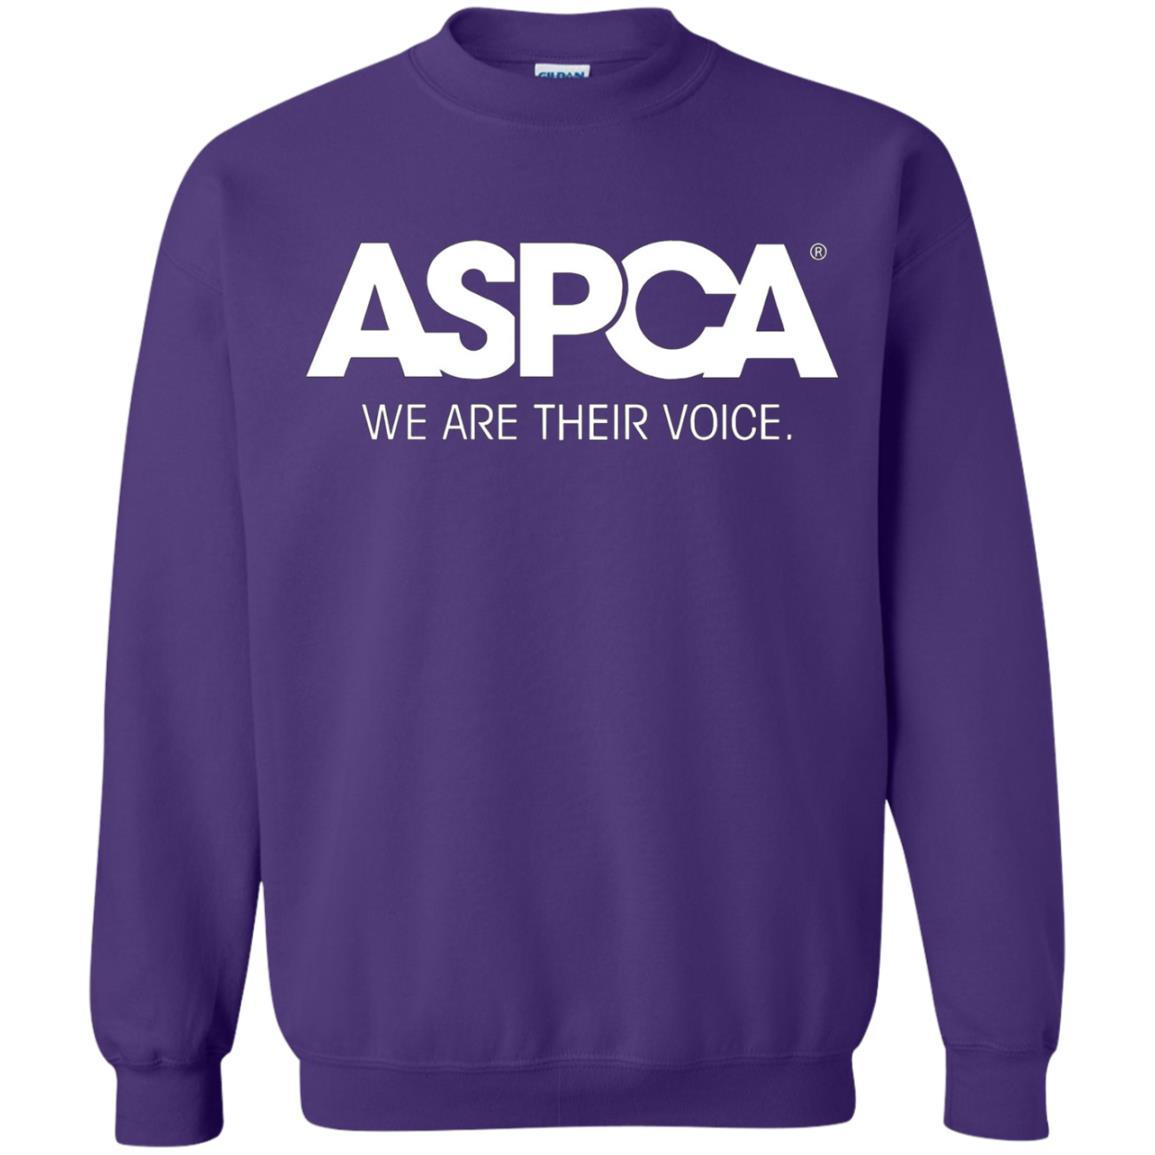 ASPCA Apparel - Crewneck Pullover Sweatshirt Purple / 5XL